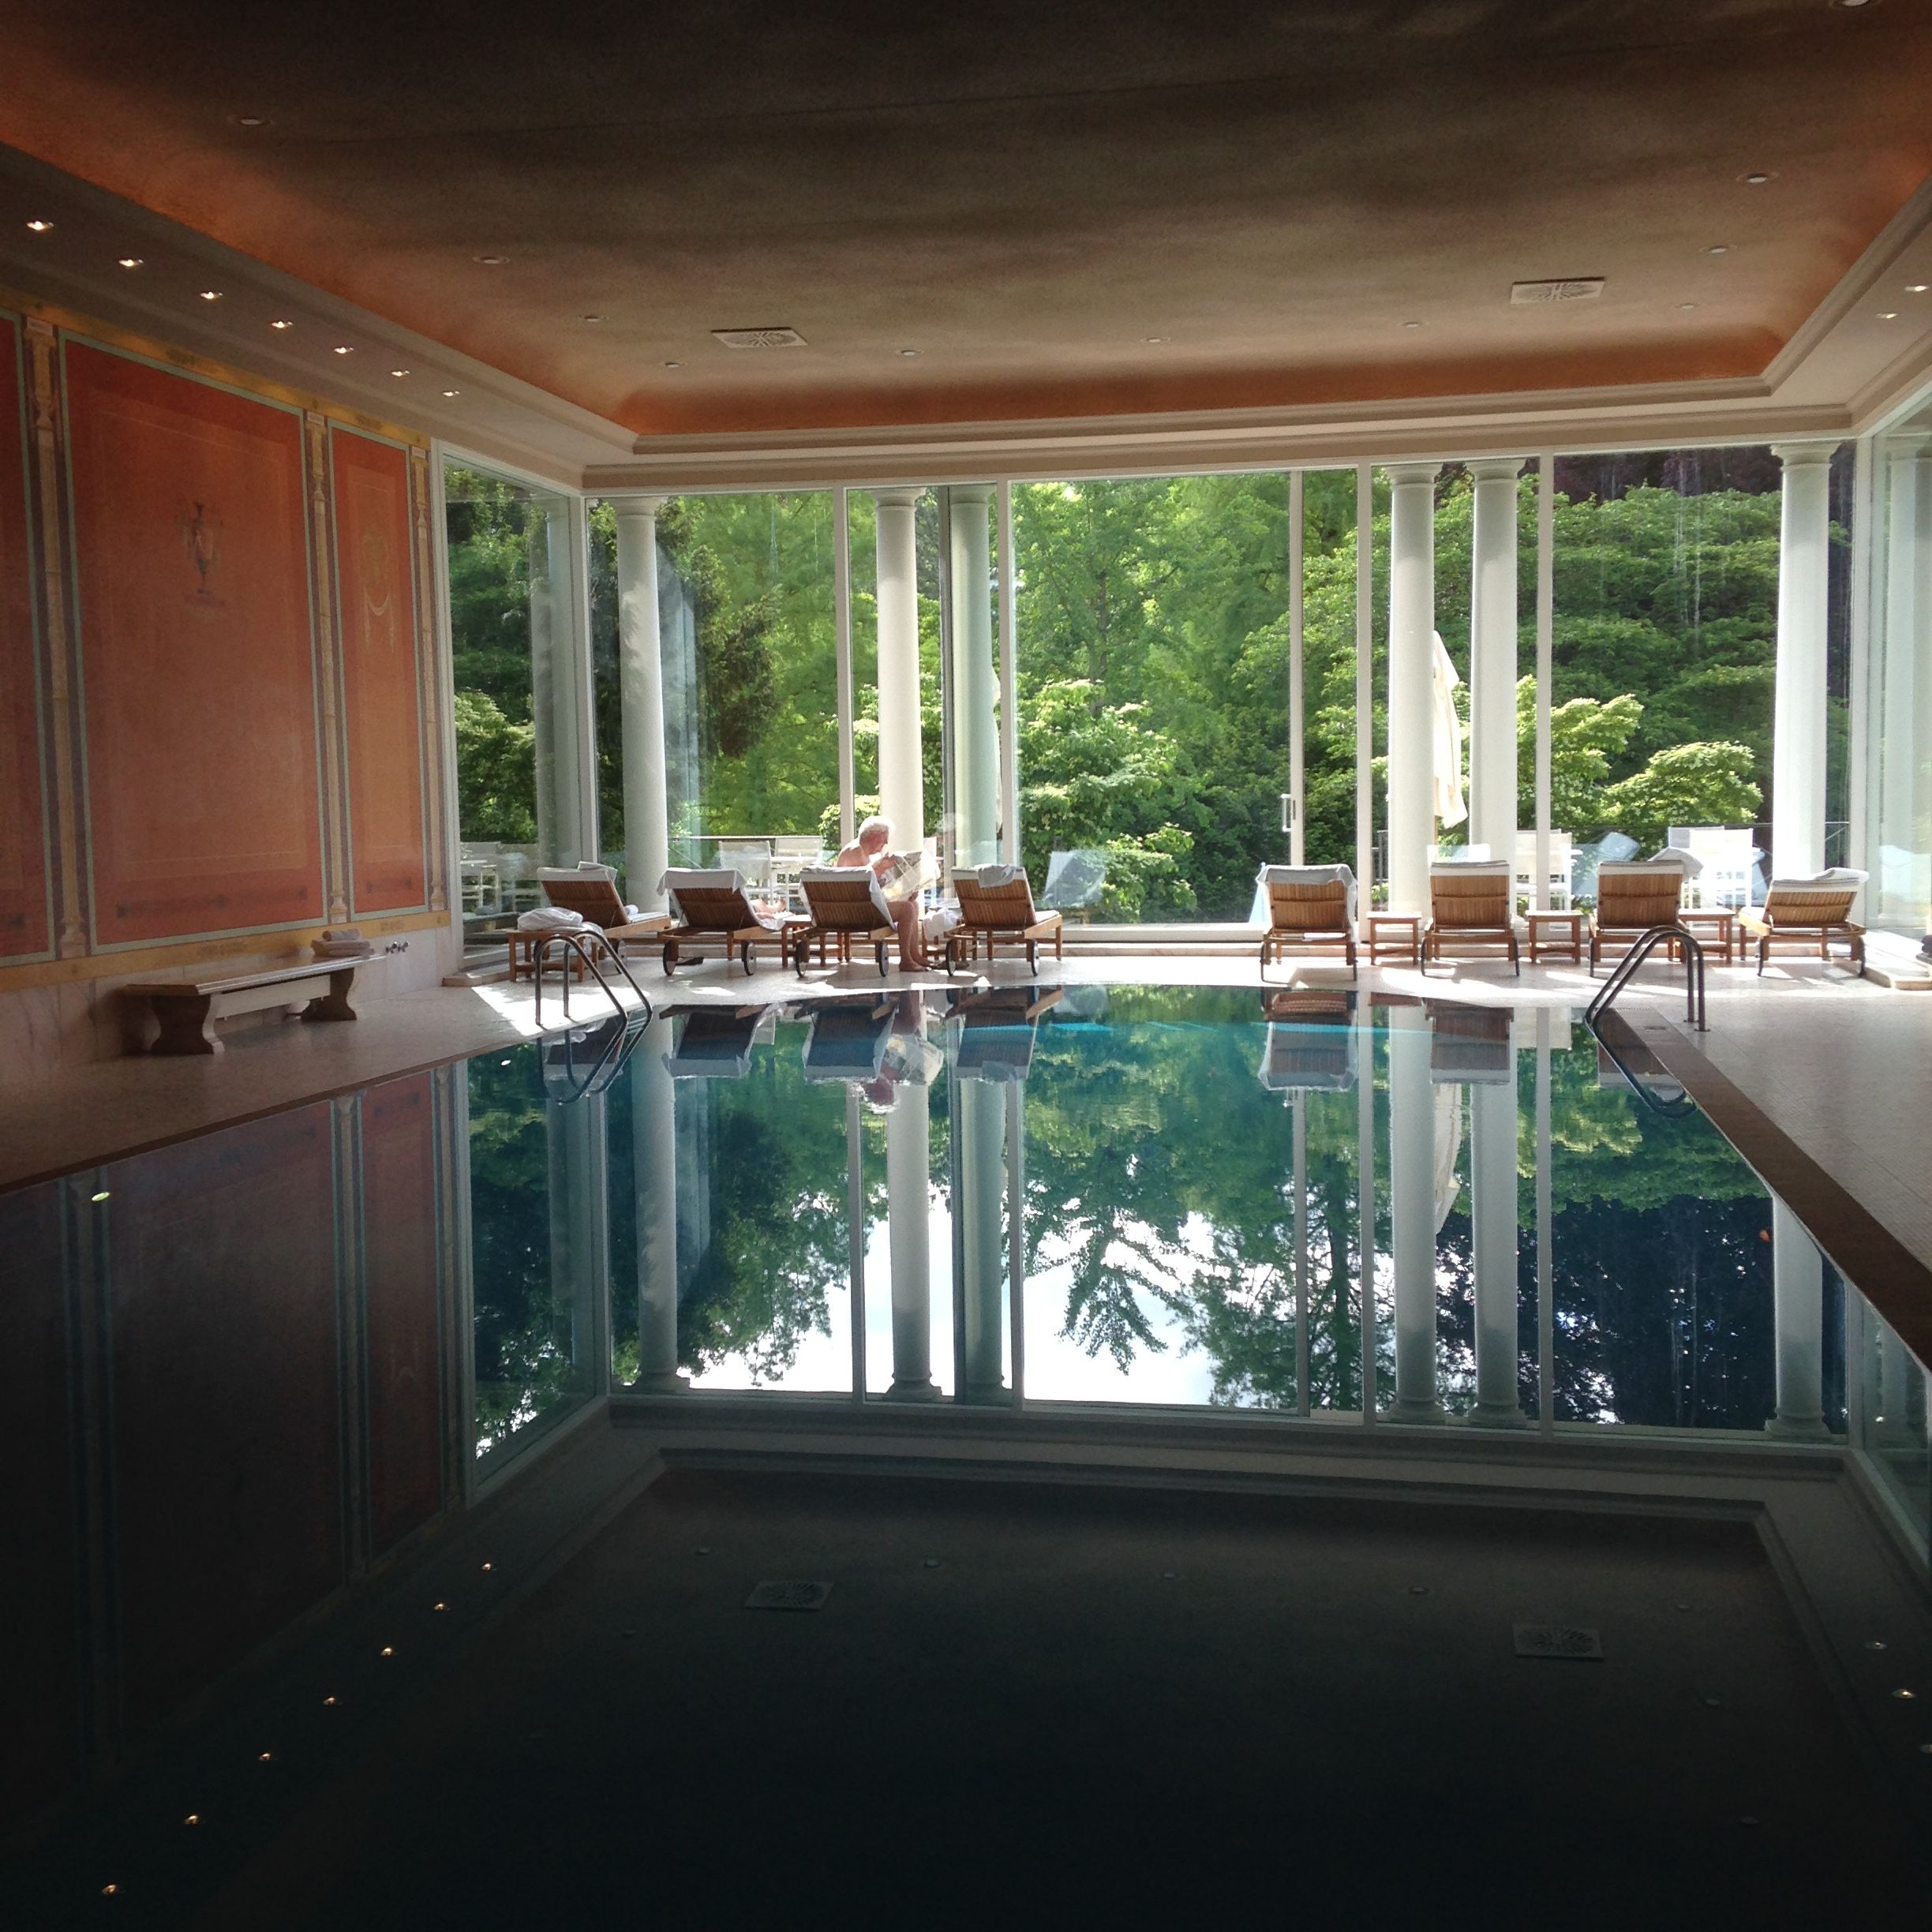 Delightful Brenners Park Hotel And Spa In Baden Baden, Germany. Luxury Spa Along The